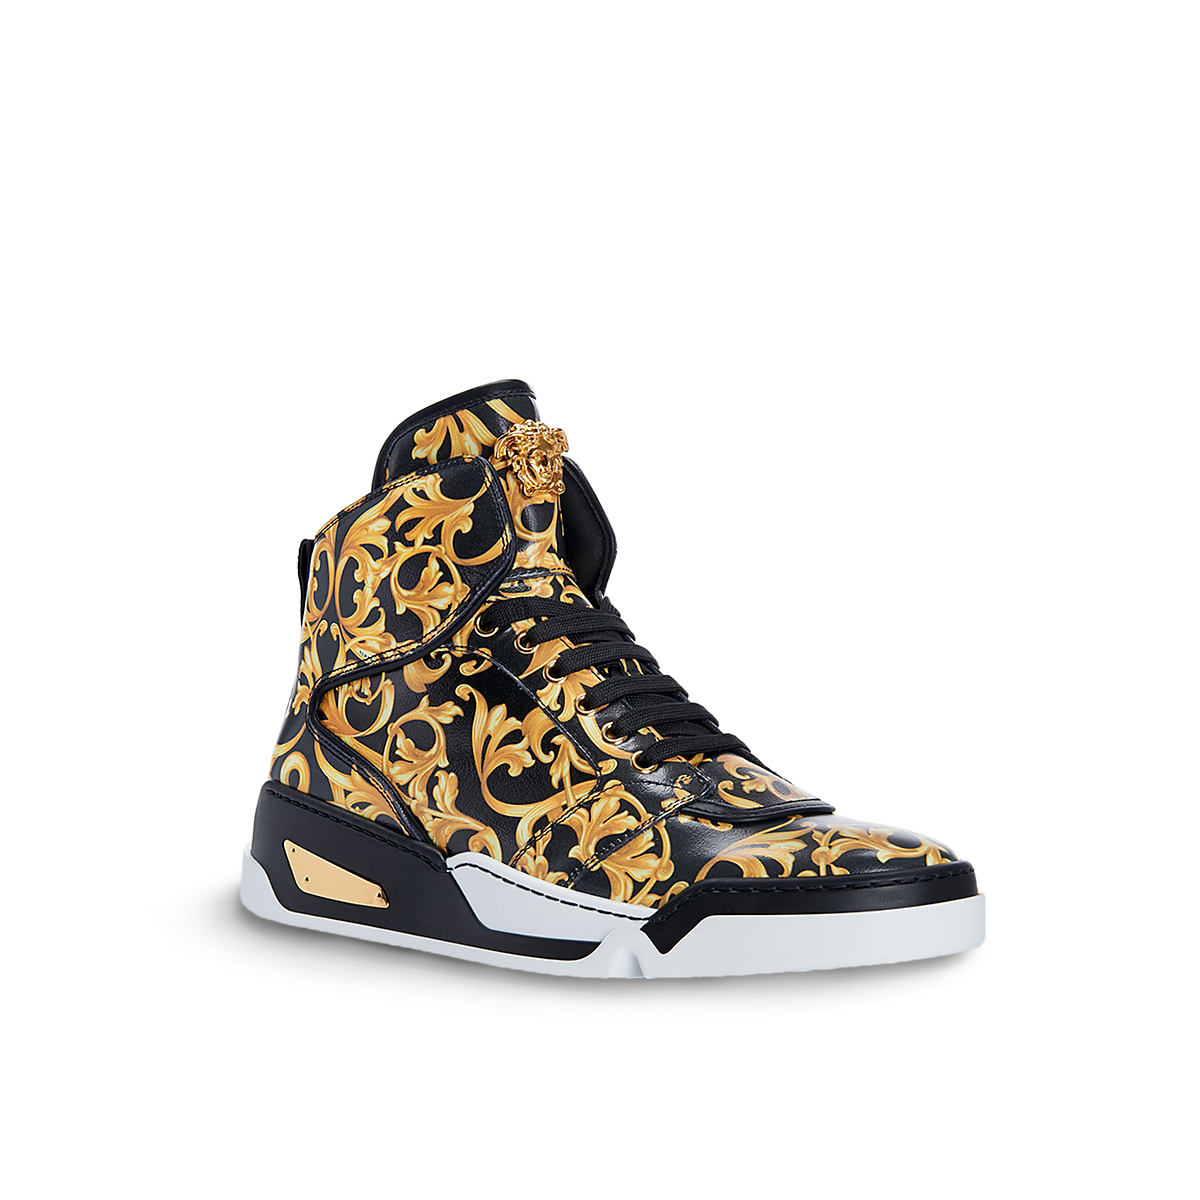 ad05e987b4 Versace Barocco #sneakers in fine leather: anything but ordinary ...